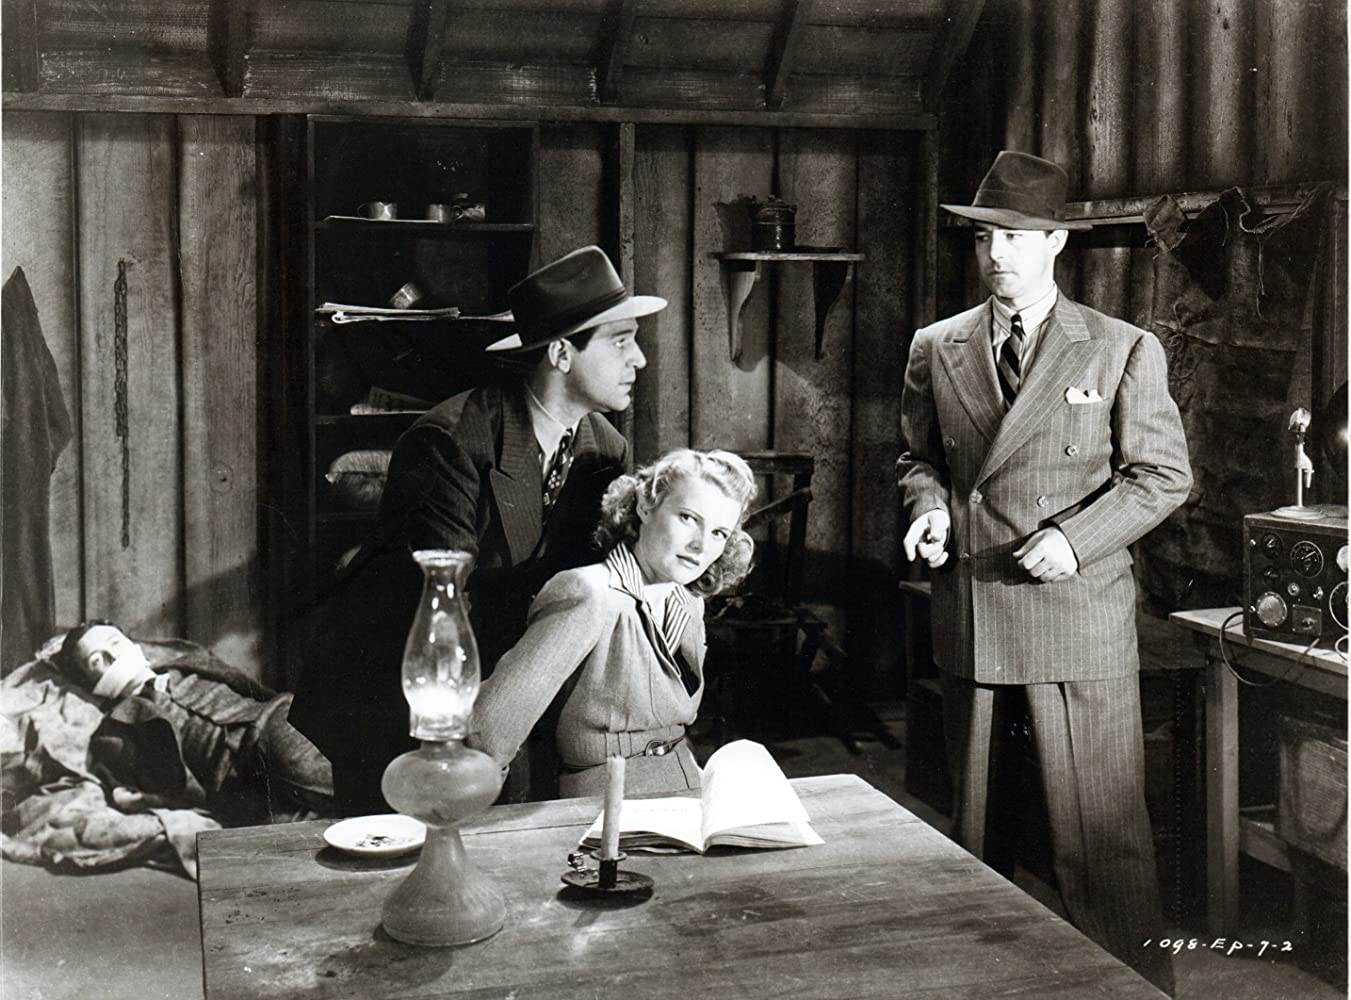 Louise Currie and Kenne Duncan in Adventures of Captain Marvel (1941)